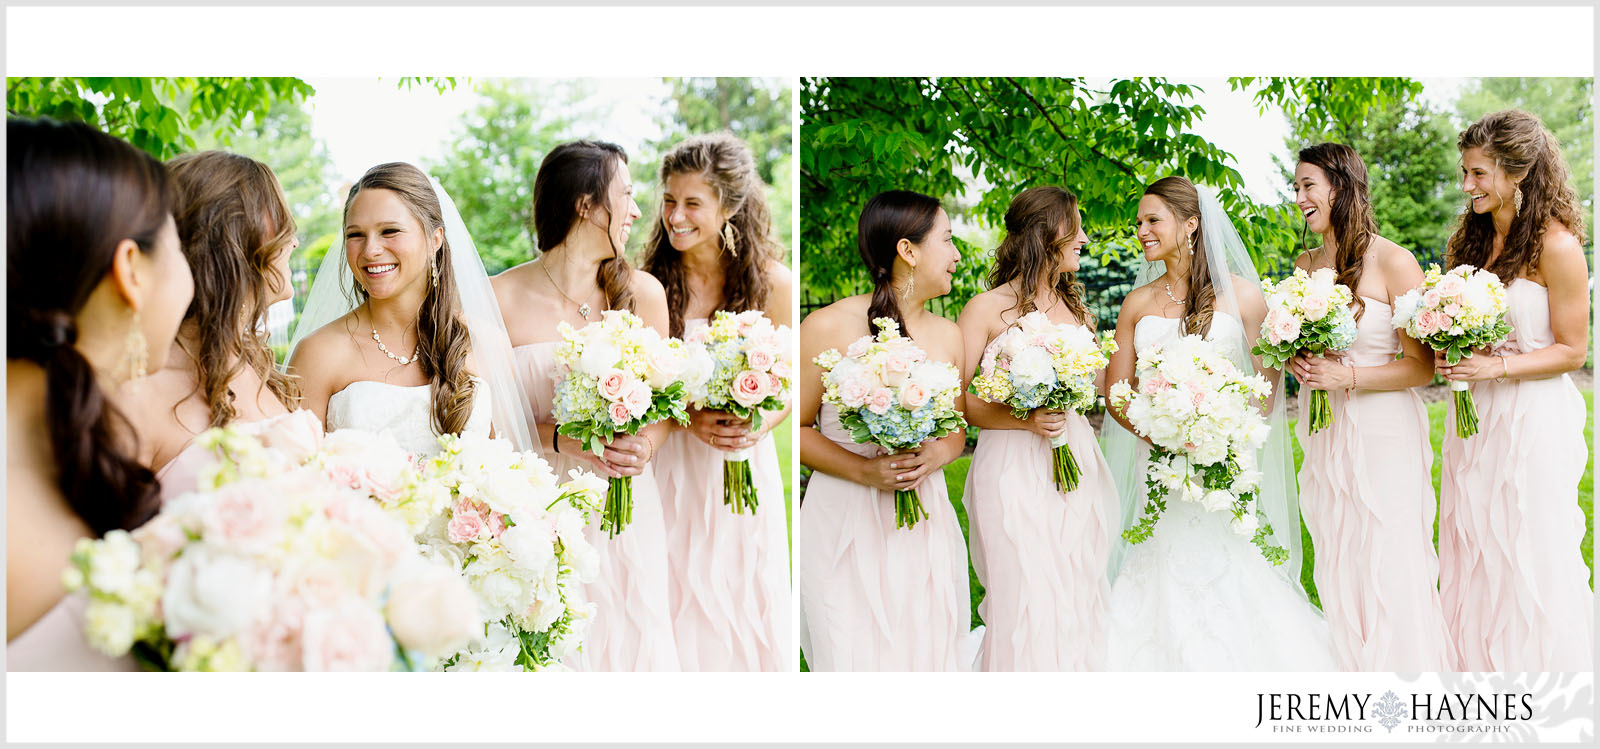 fun-bridal-party-pictues-jeremy-haynes-photography.jpg